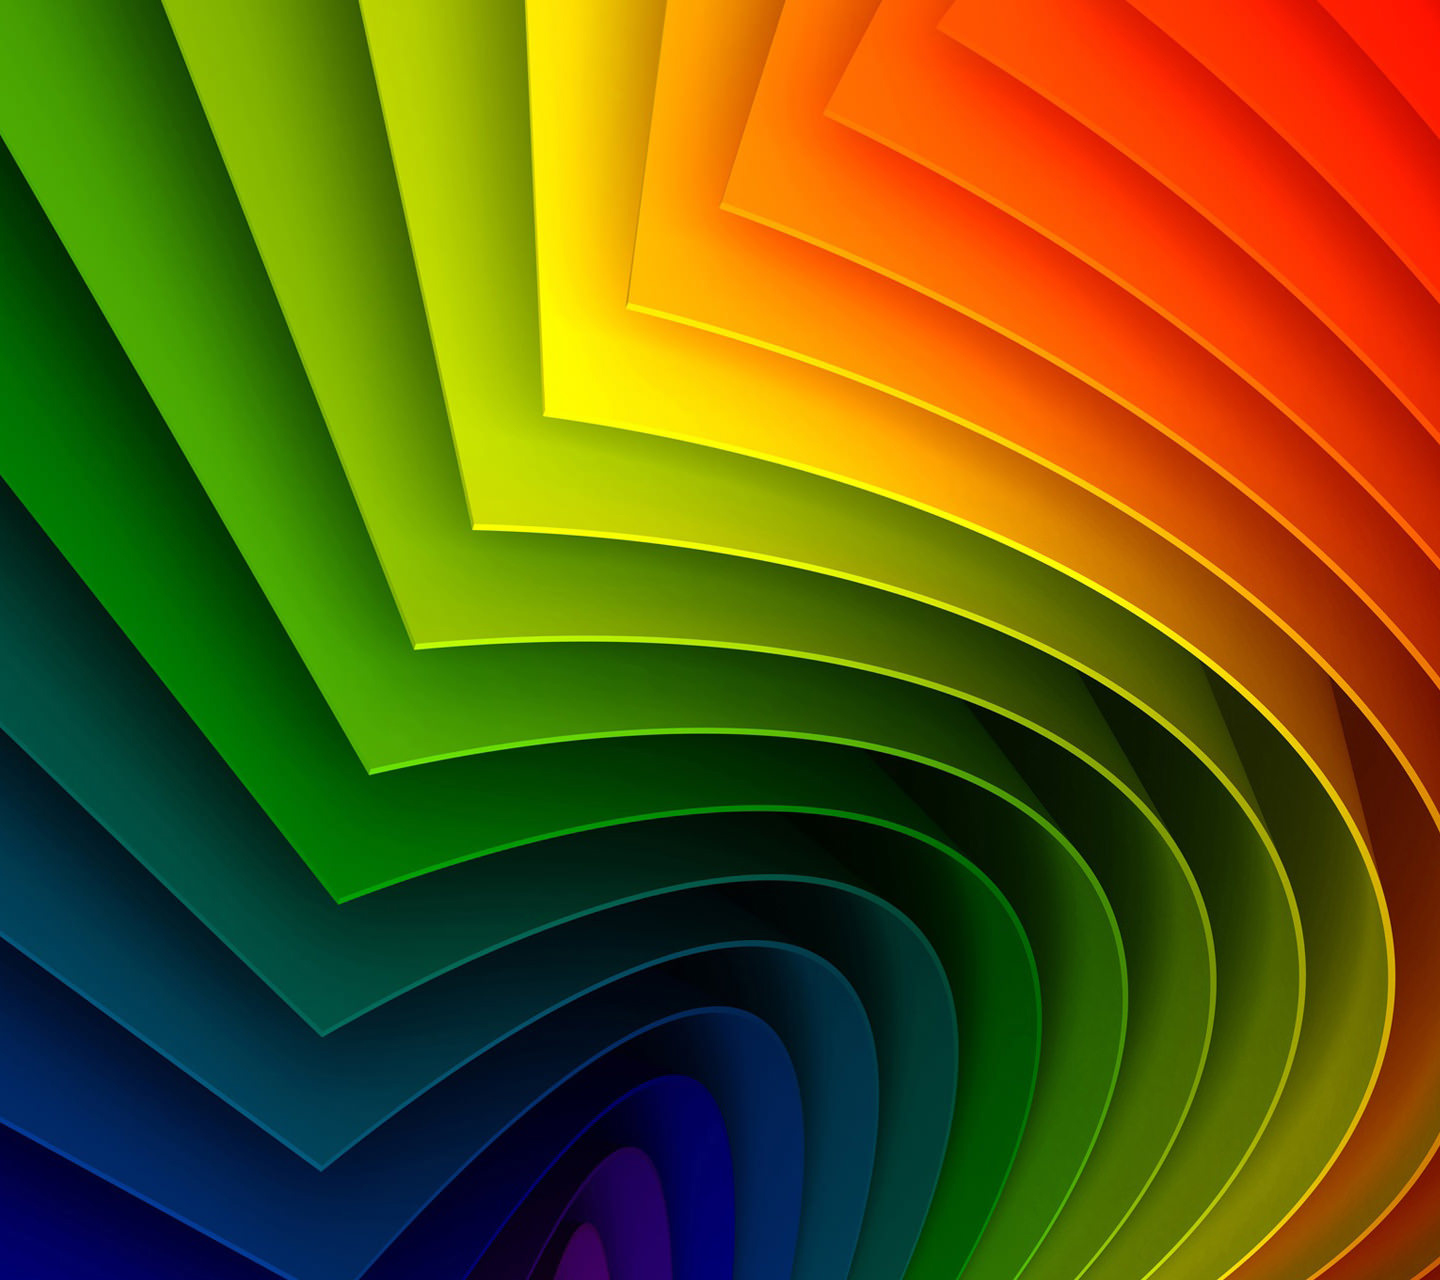 Awesome Colorful Wallpaper - Alees Blog